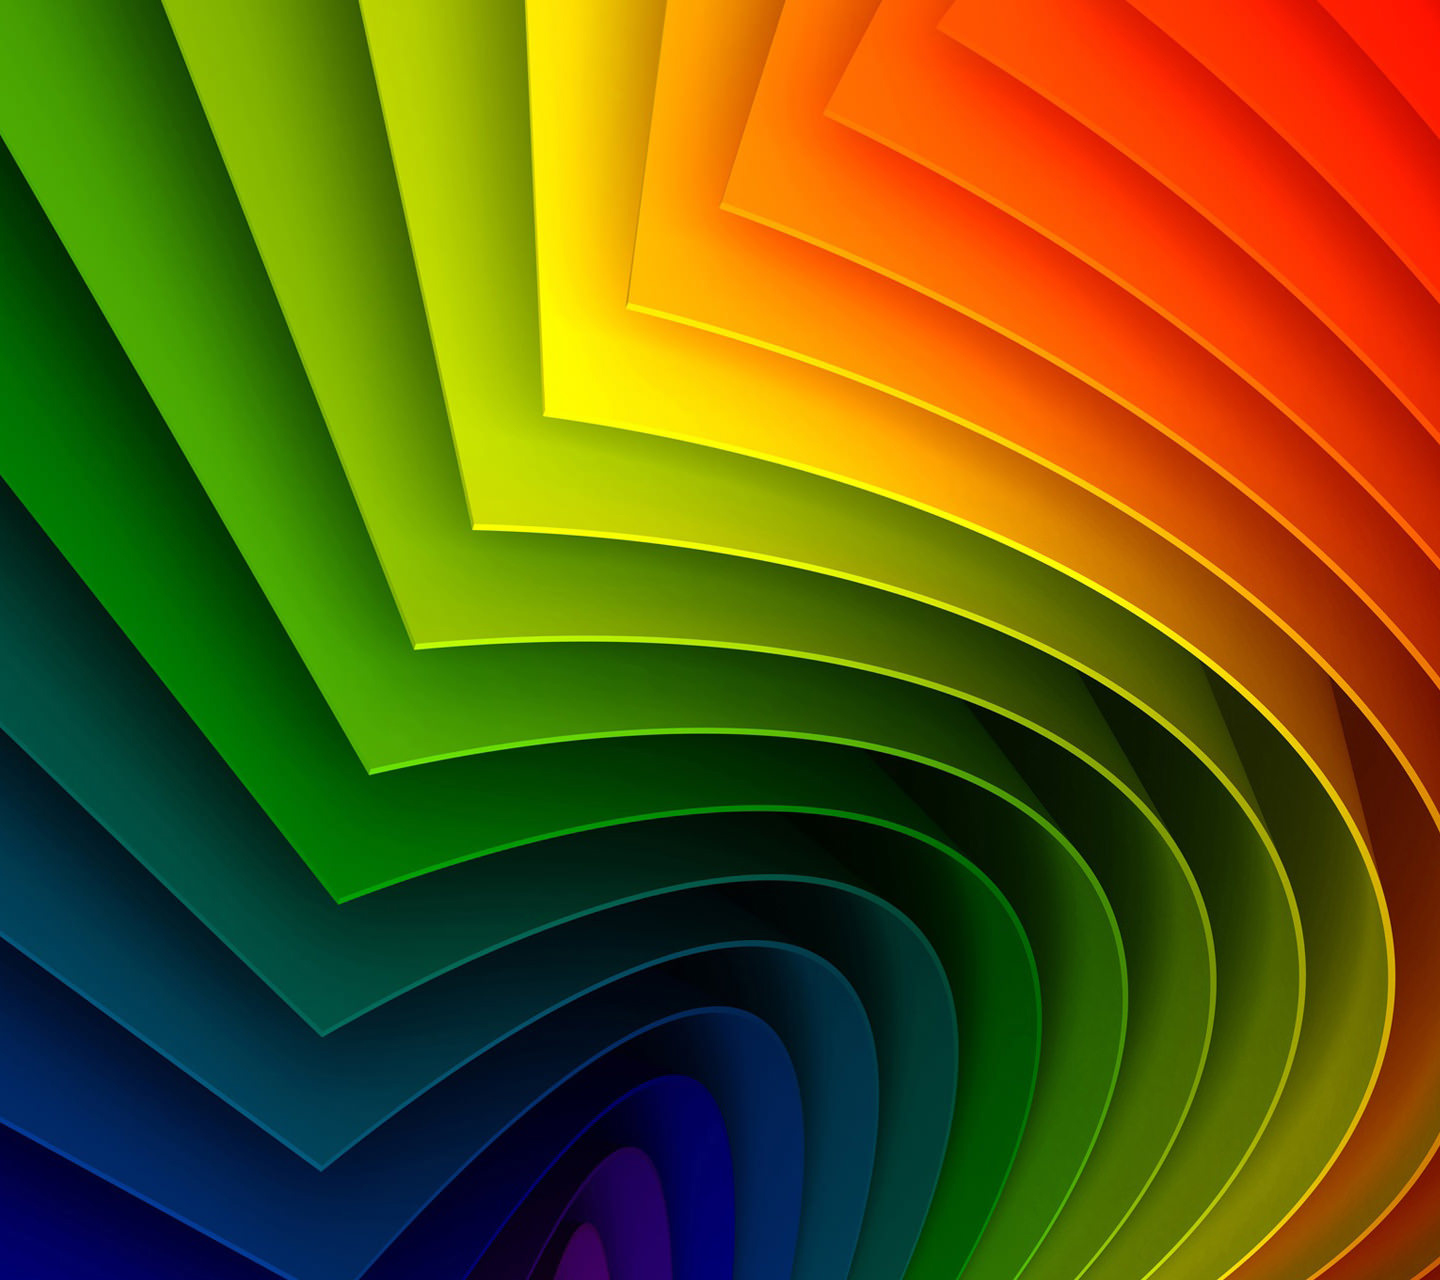 Awesome Colorful Wallpaper - Alees Blog